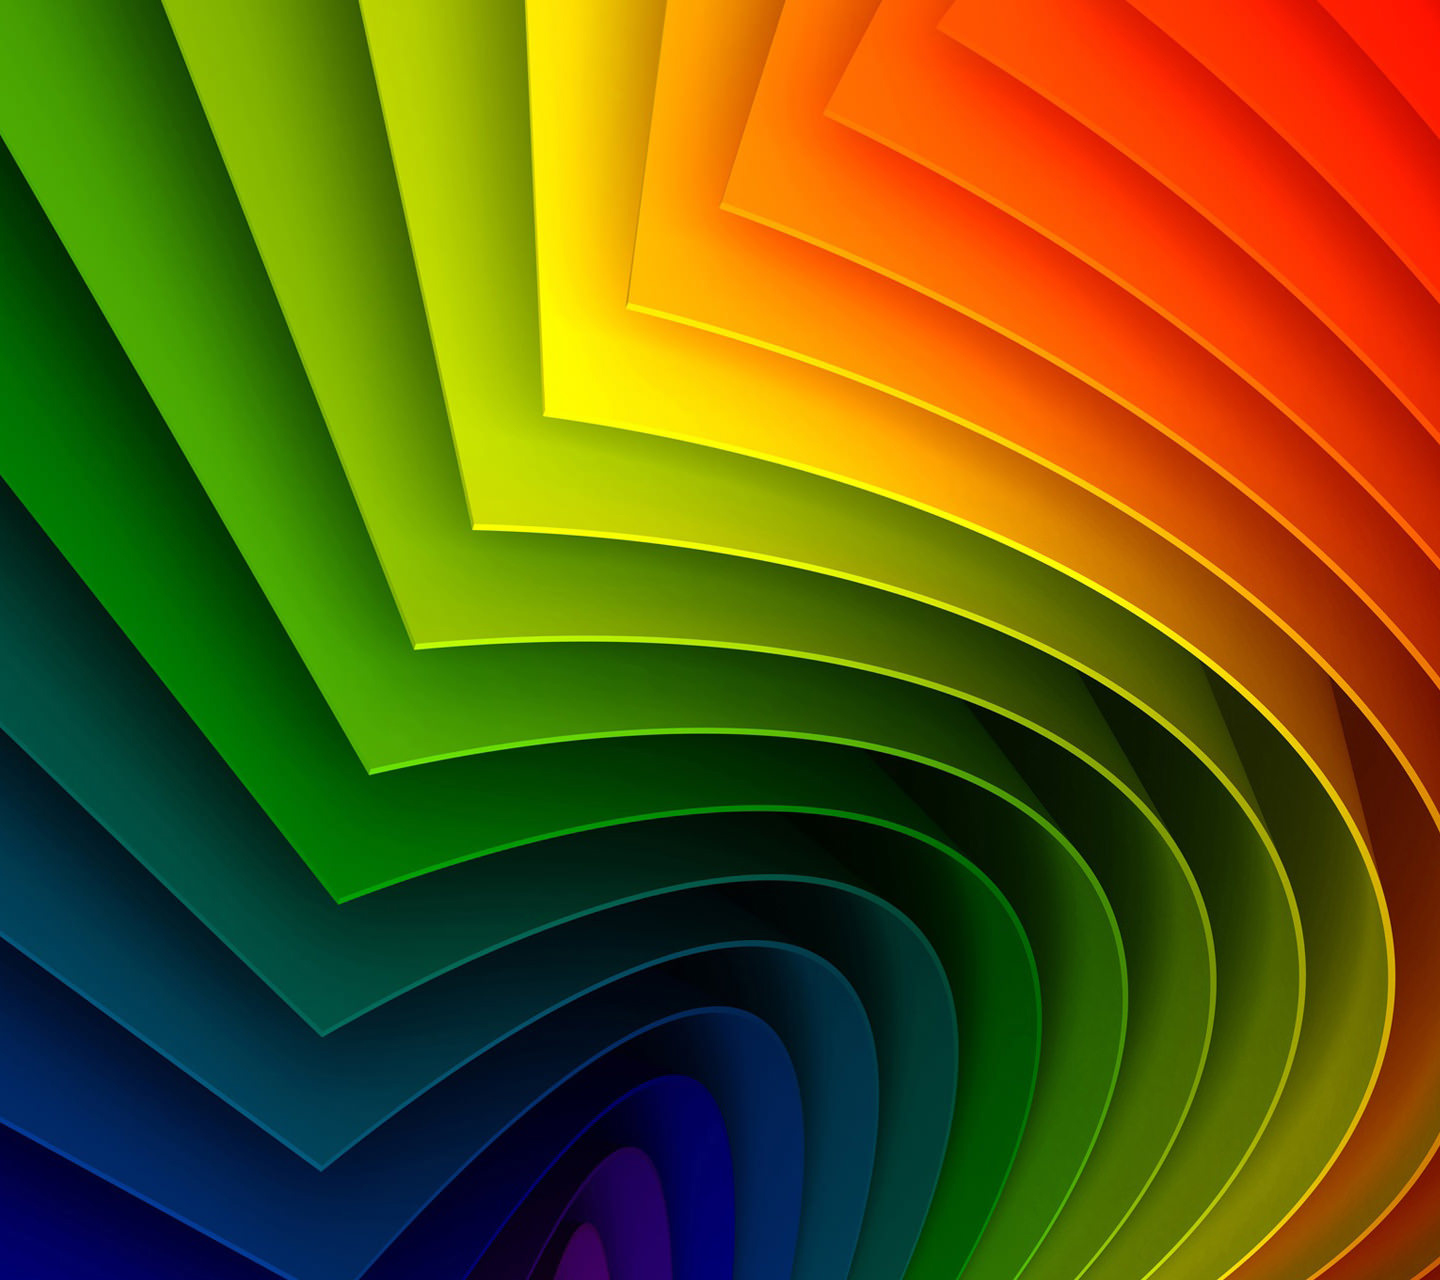 Awesome Colorful Wallpaper - Alees Blog